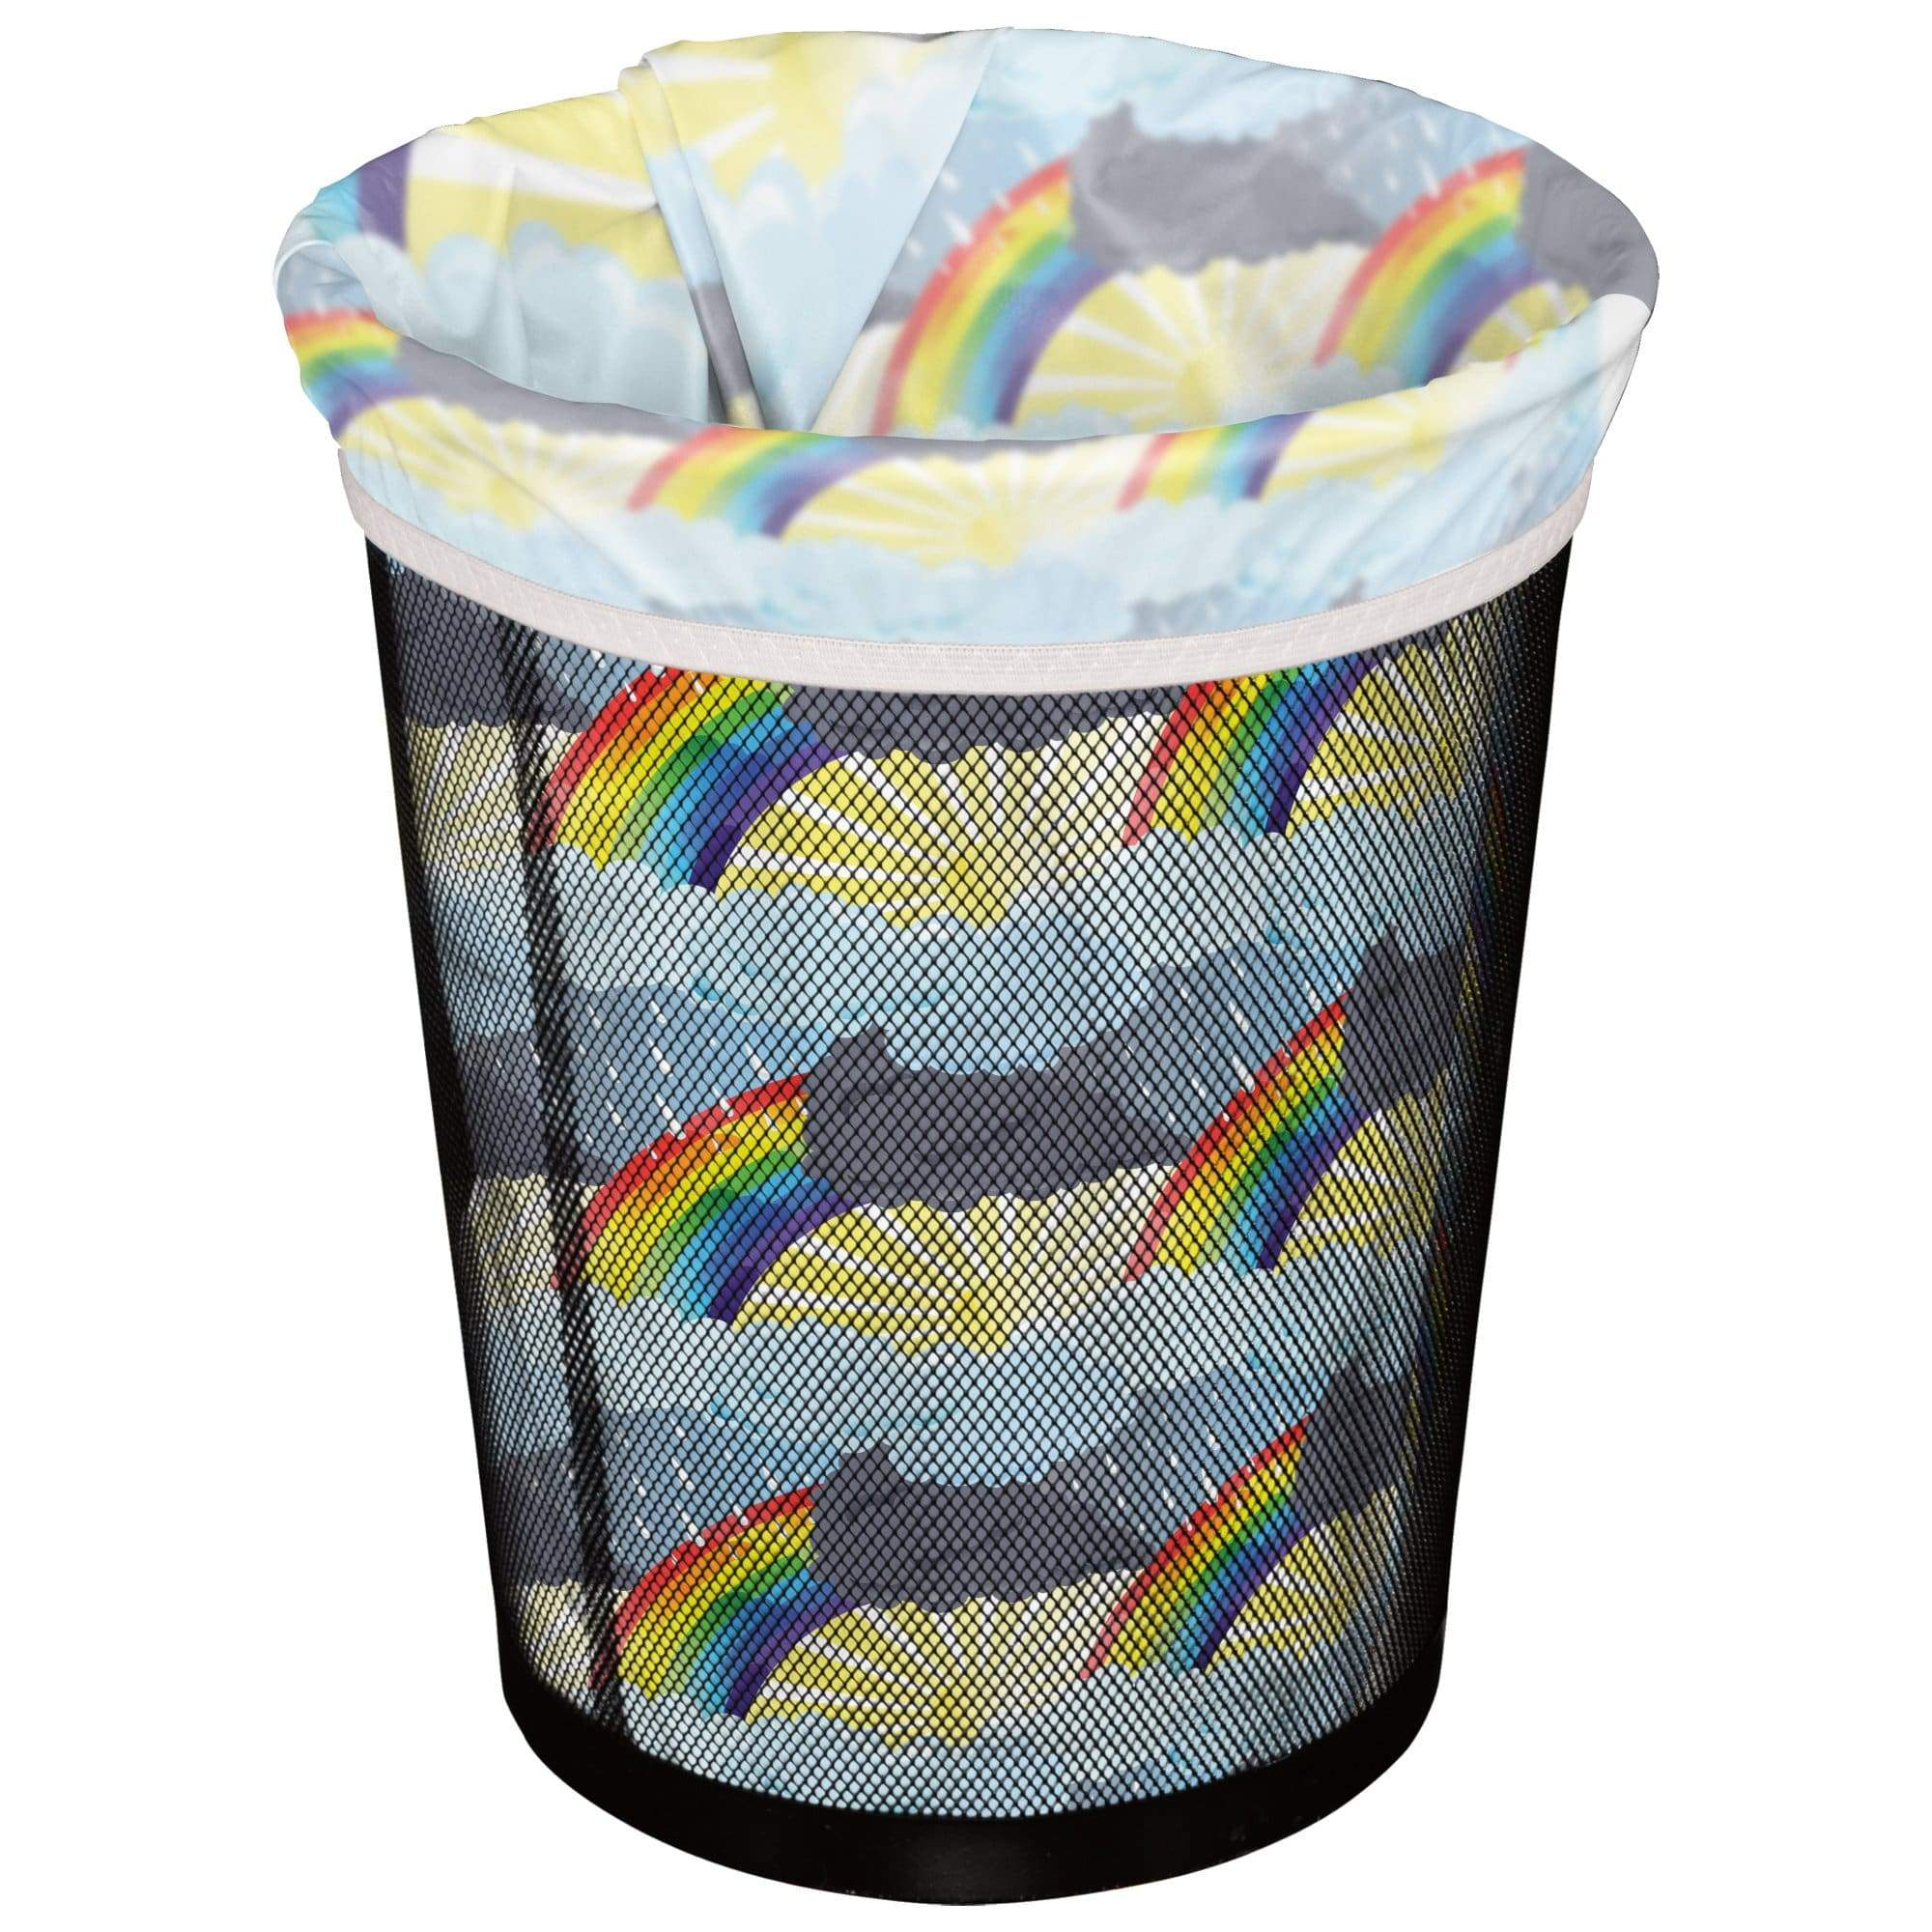 Planet Wise Small Diaper Pail Liner - Through The Storm S